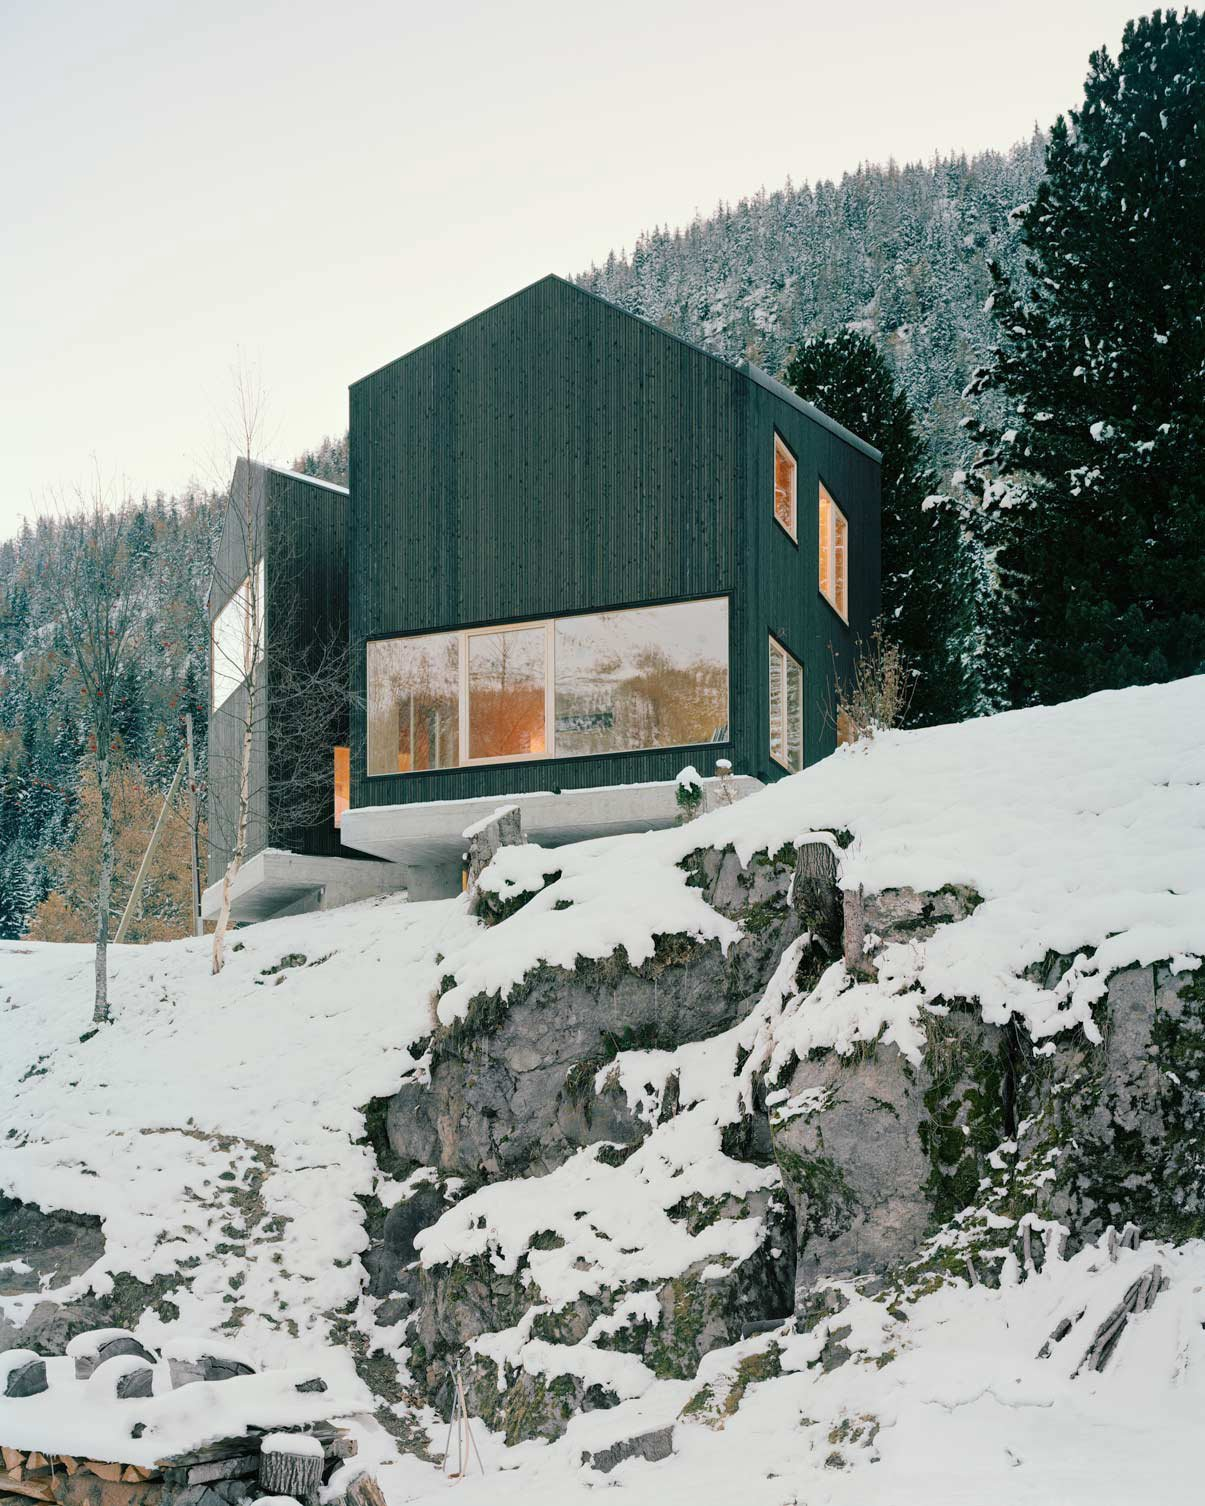 Lacroix Chessex Architectes realized La Maison aux Jeurs, a cabin in Les Jeurs, Switzerland situated on a rocky hill above the road. The structure is divided into two volumes that are angled 45 degrees apart with a connection on the mountain side. Both volumes are designed with different views of the valley below. Tagged: Exterior, Cabin Building Type, House, and Wood Siding Material.  Photo 11 of 11 in 10 Modern Wintry Cabins We'd Be Happy to Hole Up In